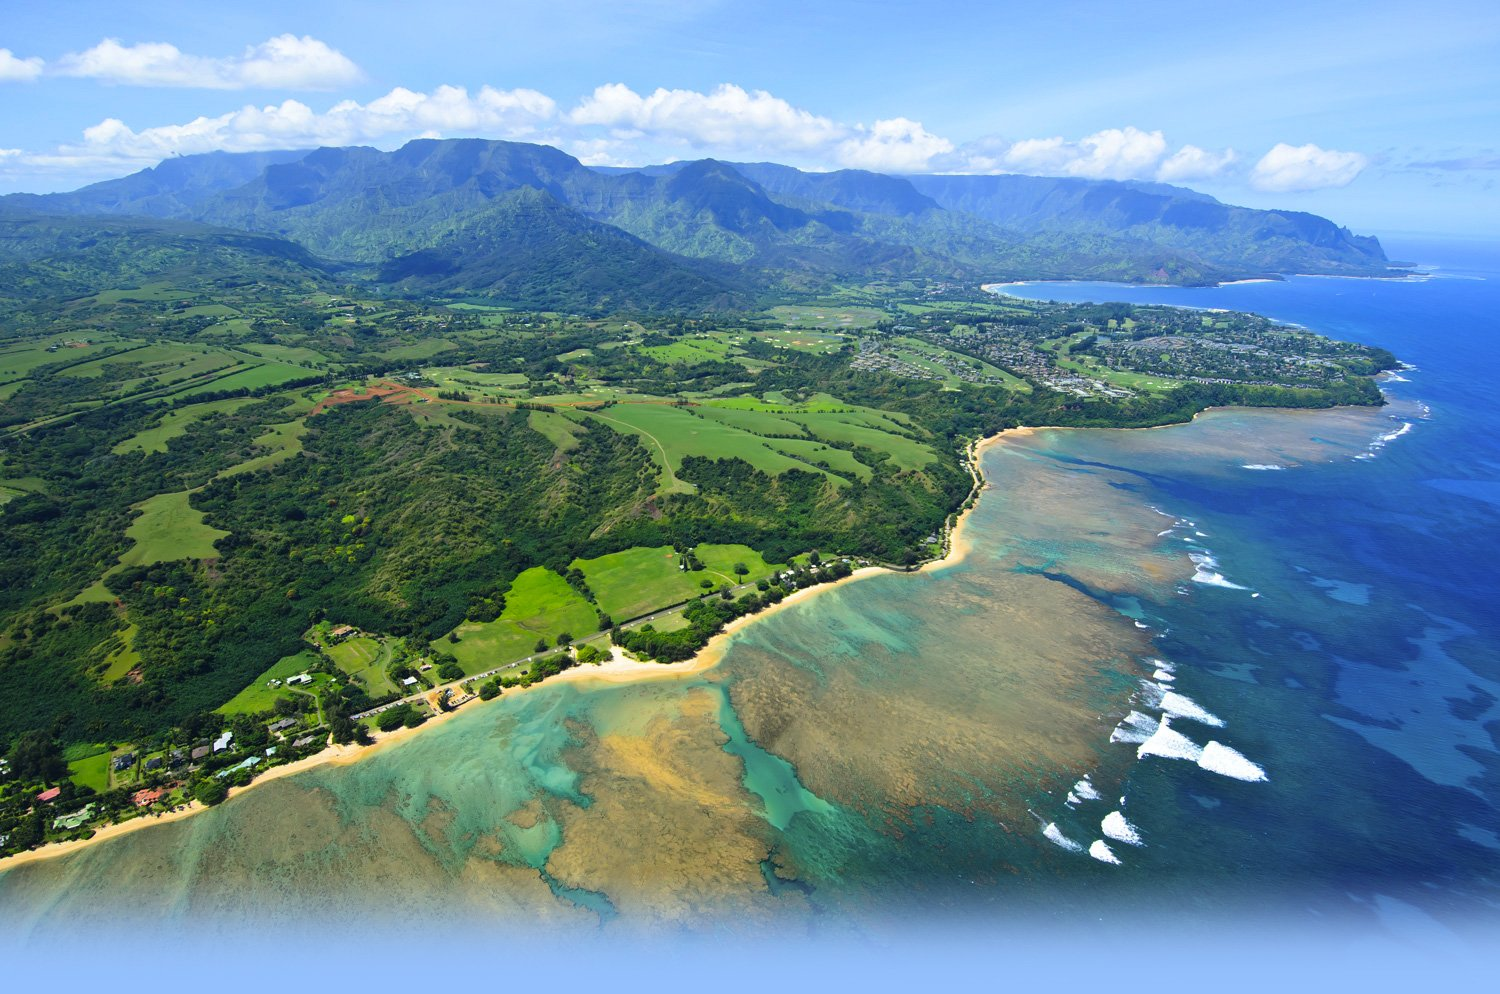 Webcam - Prince Golf Course - Princeville at Hanalei